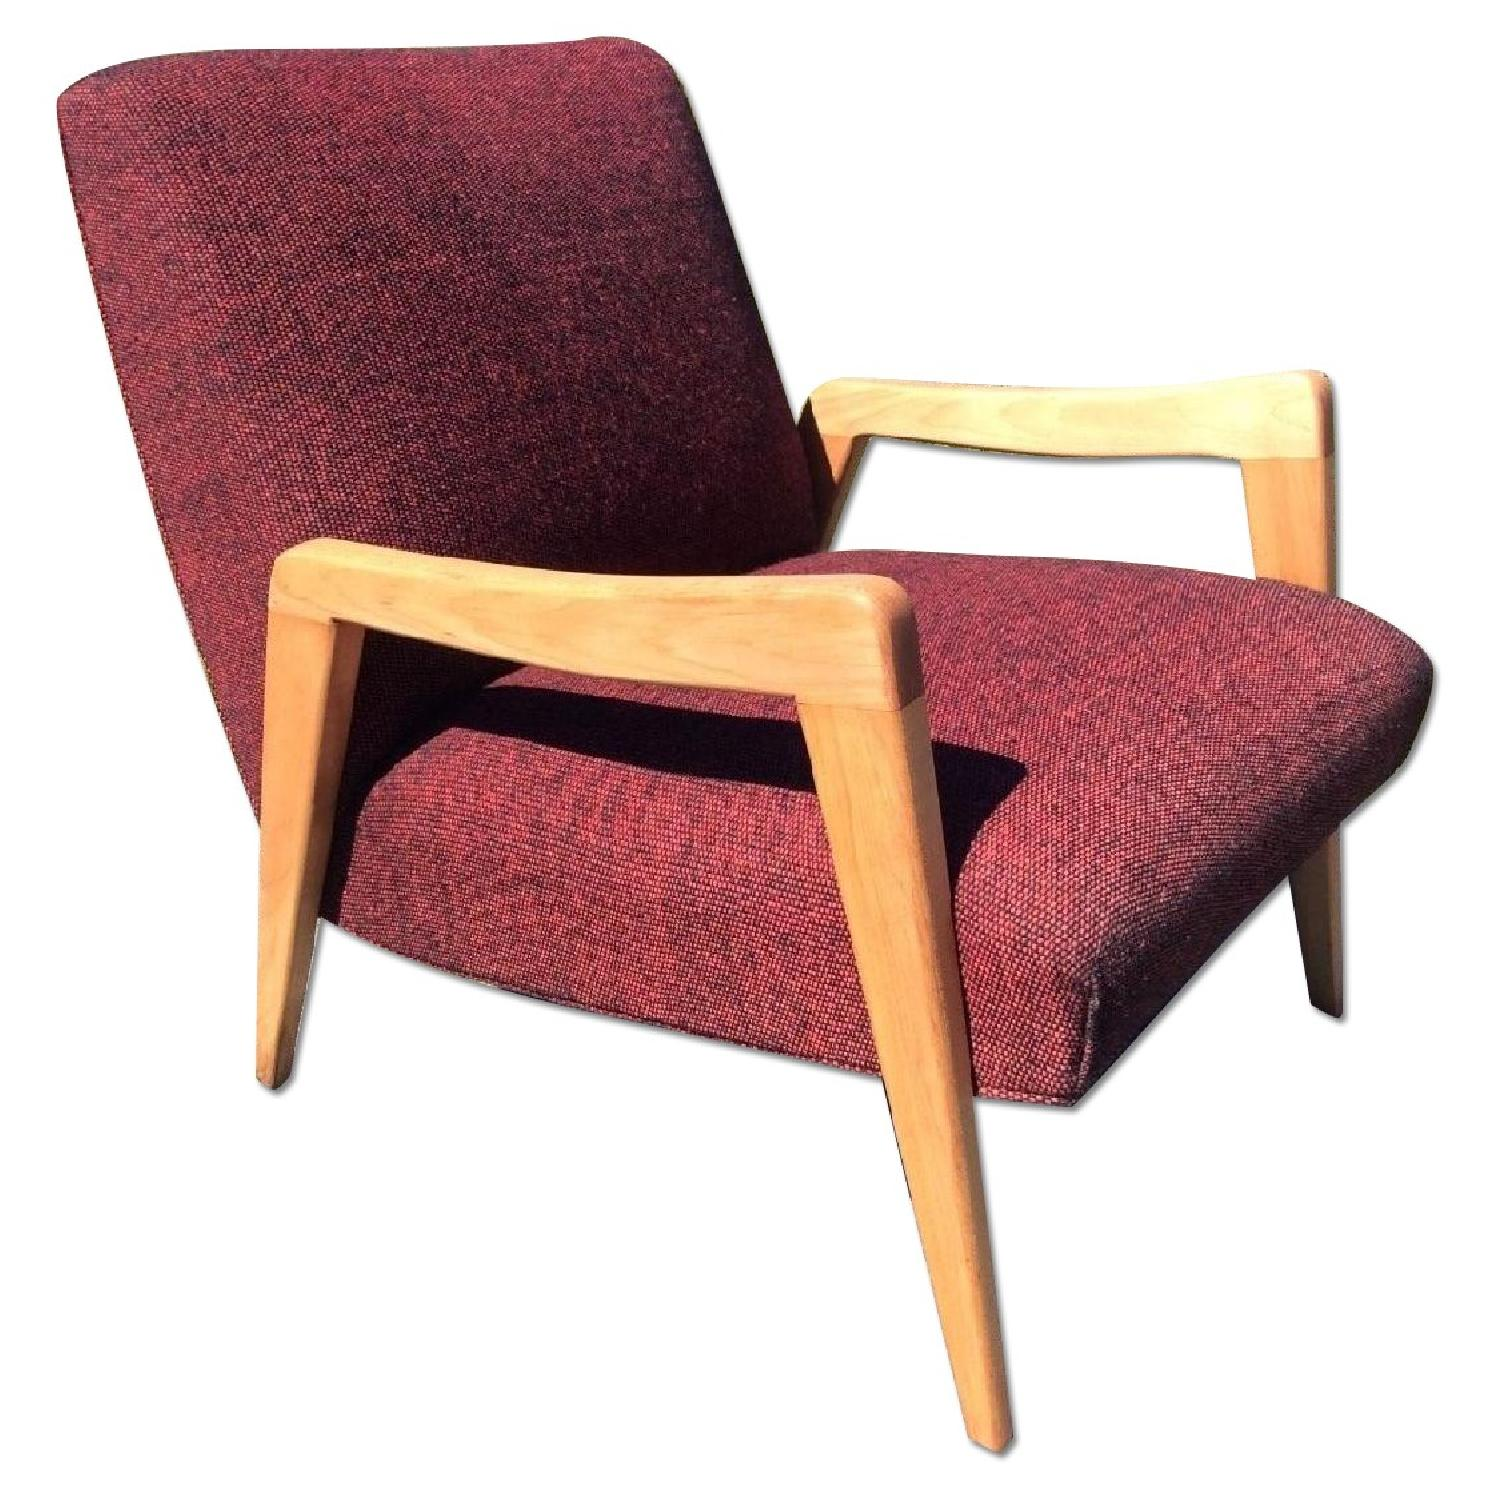 Russel Wright Conant Ball Birch Mid Century Modern Lounge Chair - image-0